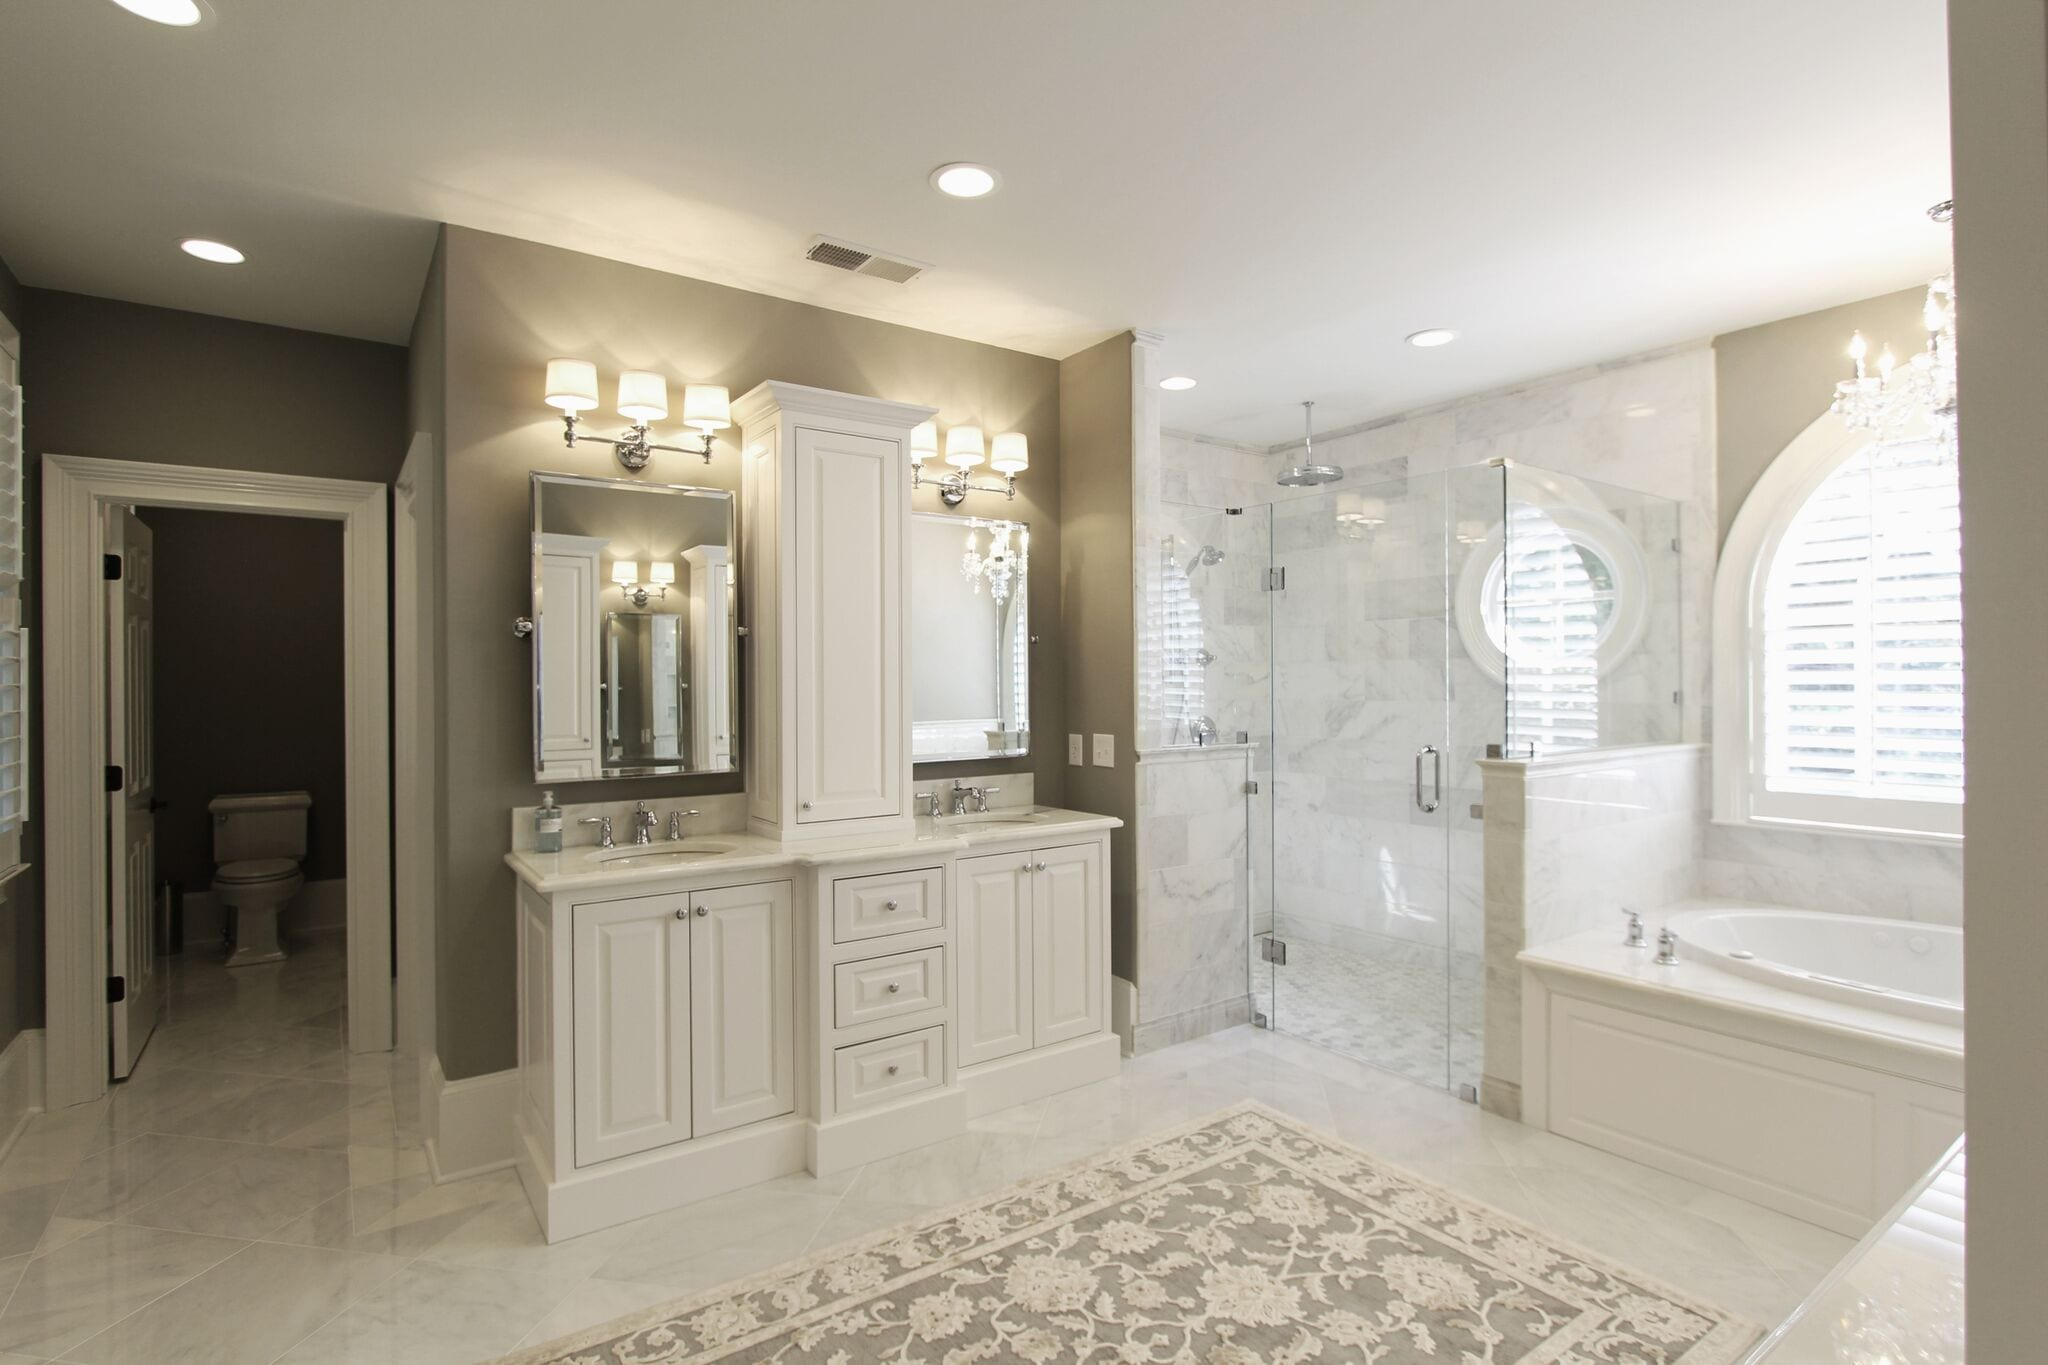 Inset Double Sink Vanity With Center Tower